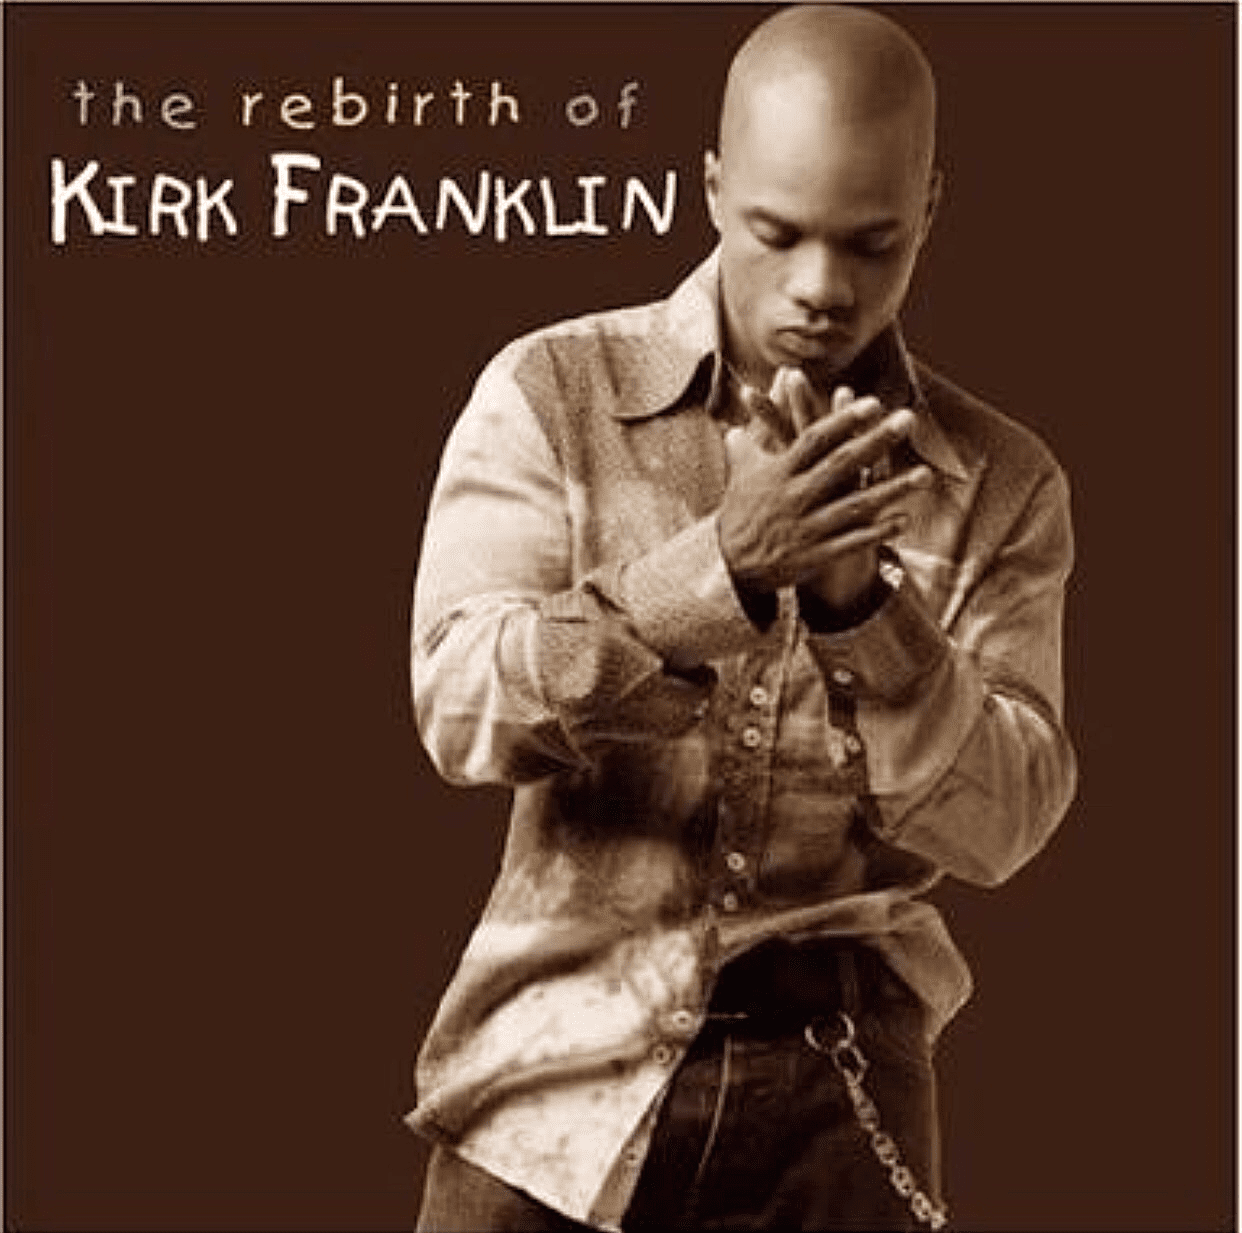 The Rebirth Of Kirk Franklin DVD cover